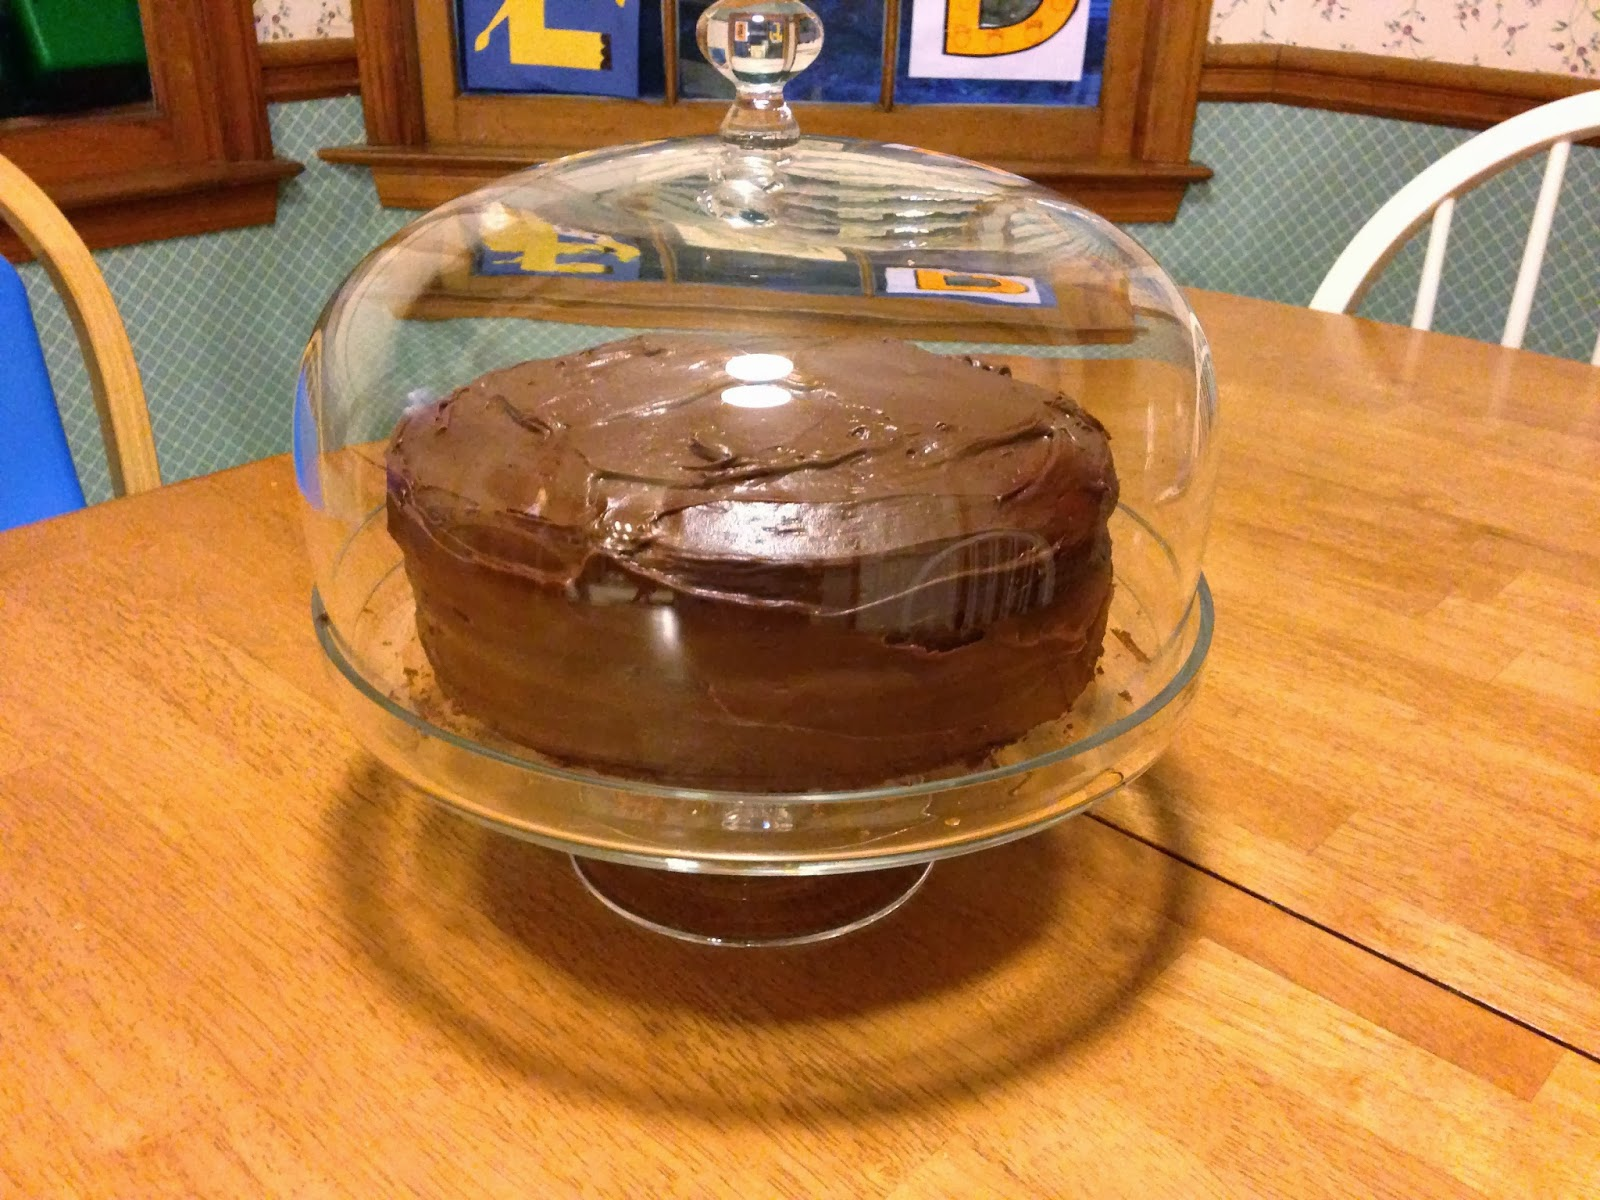 A Little Slice of Life: Portillo's Chocolate Cake